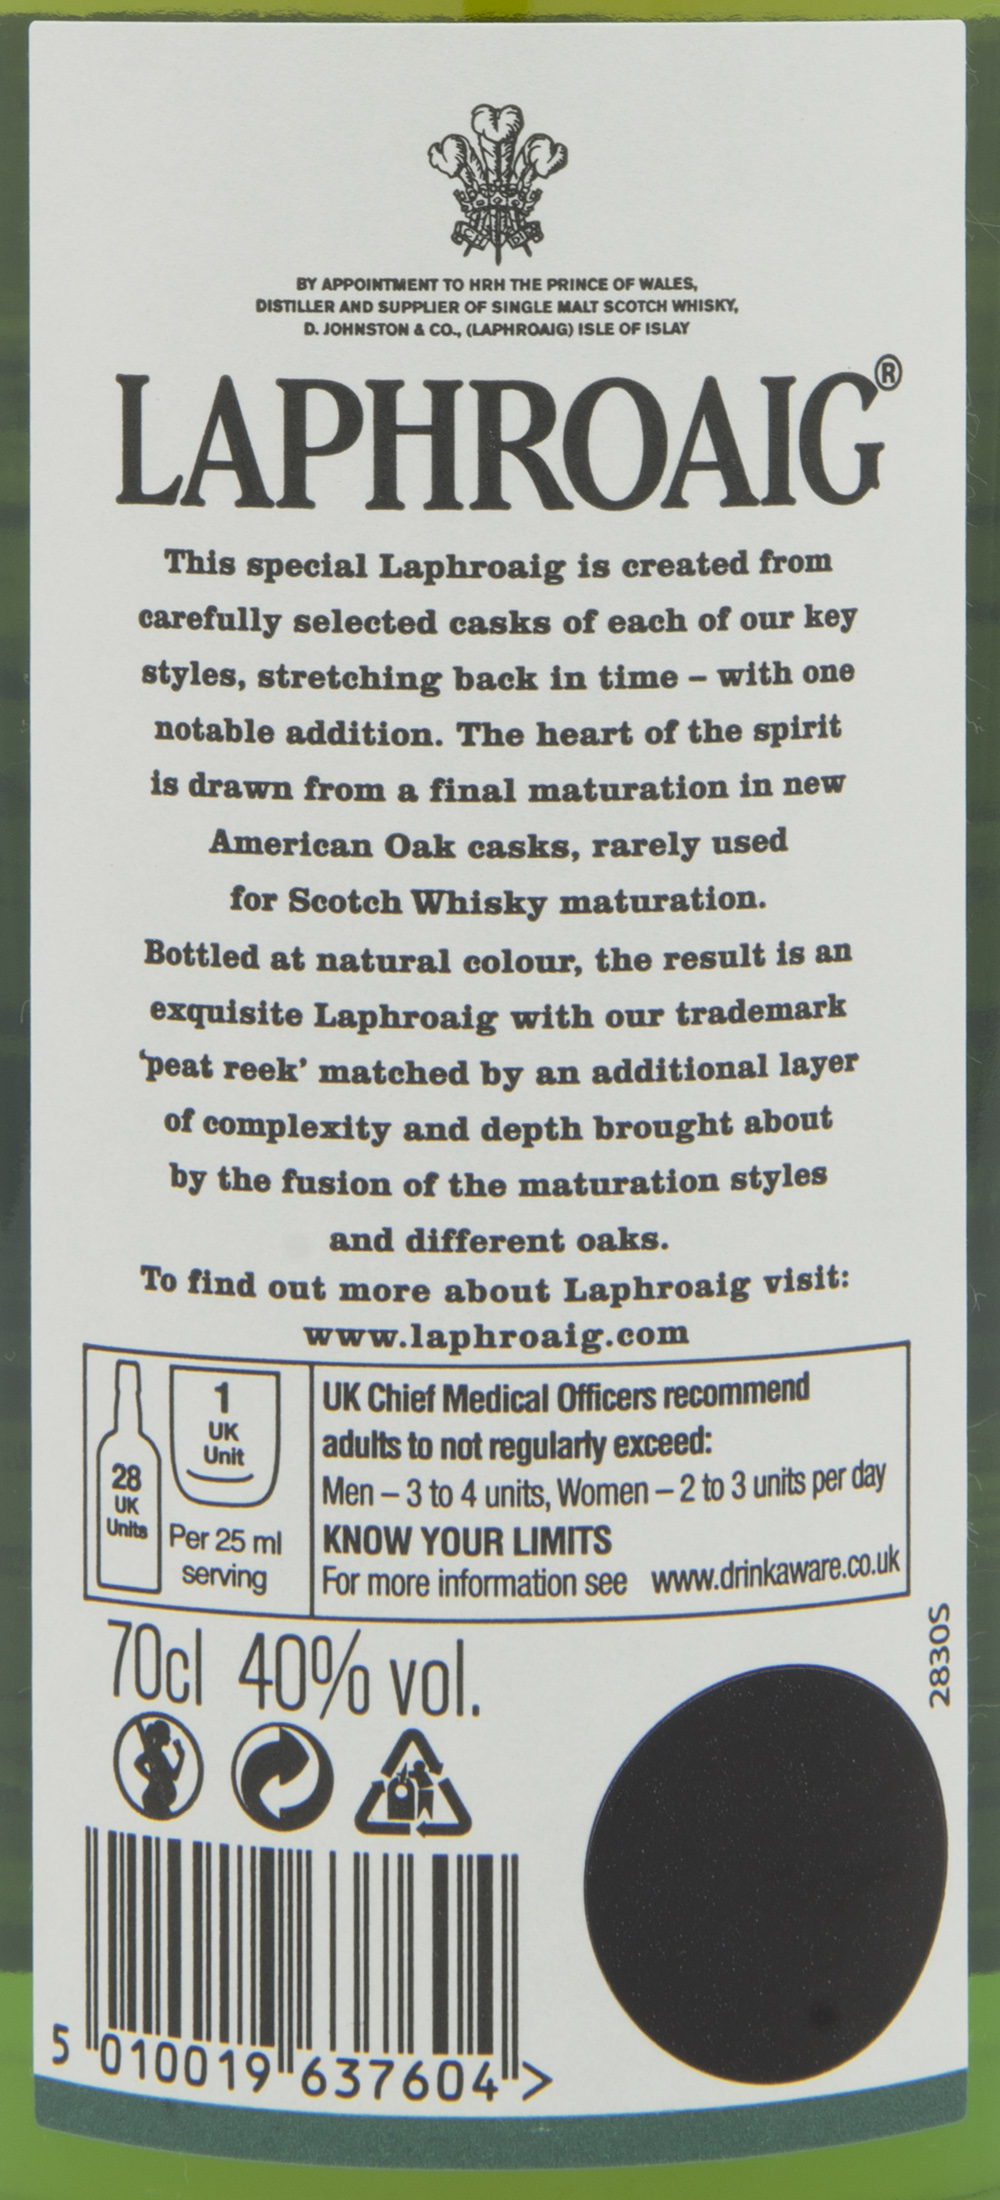 Billede: DSC_4806 - Laphroaig Select - back label.jpg